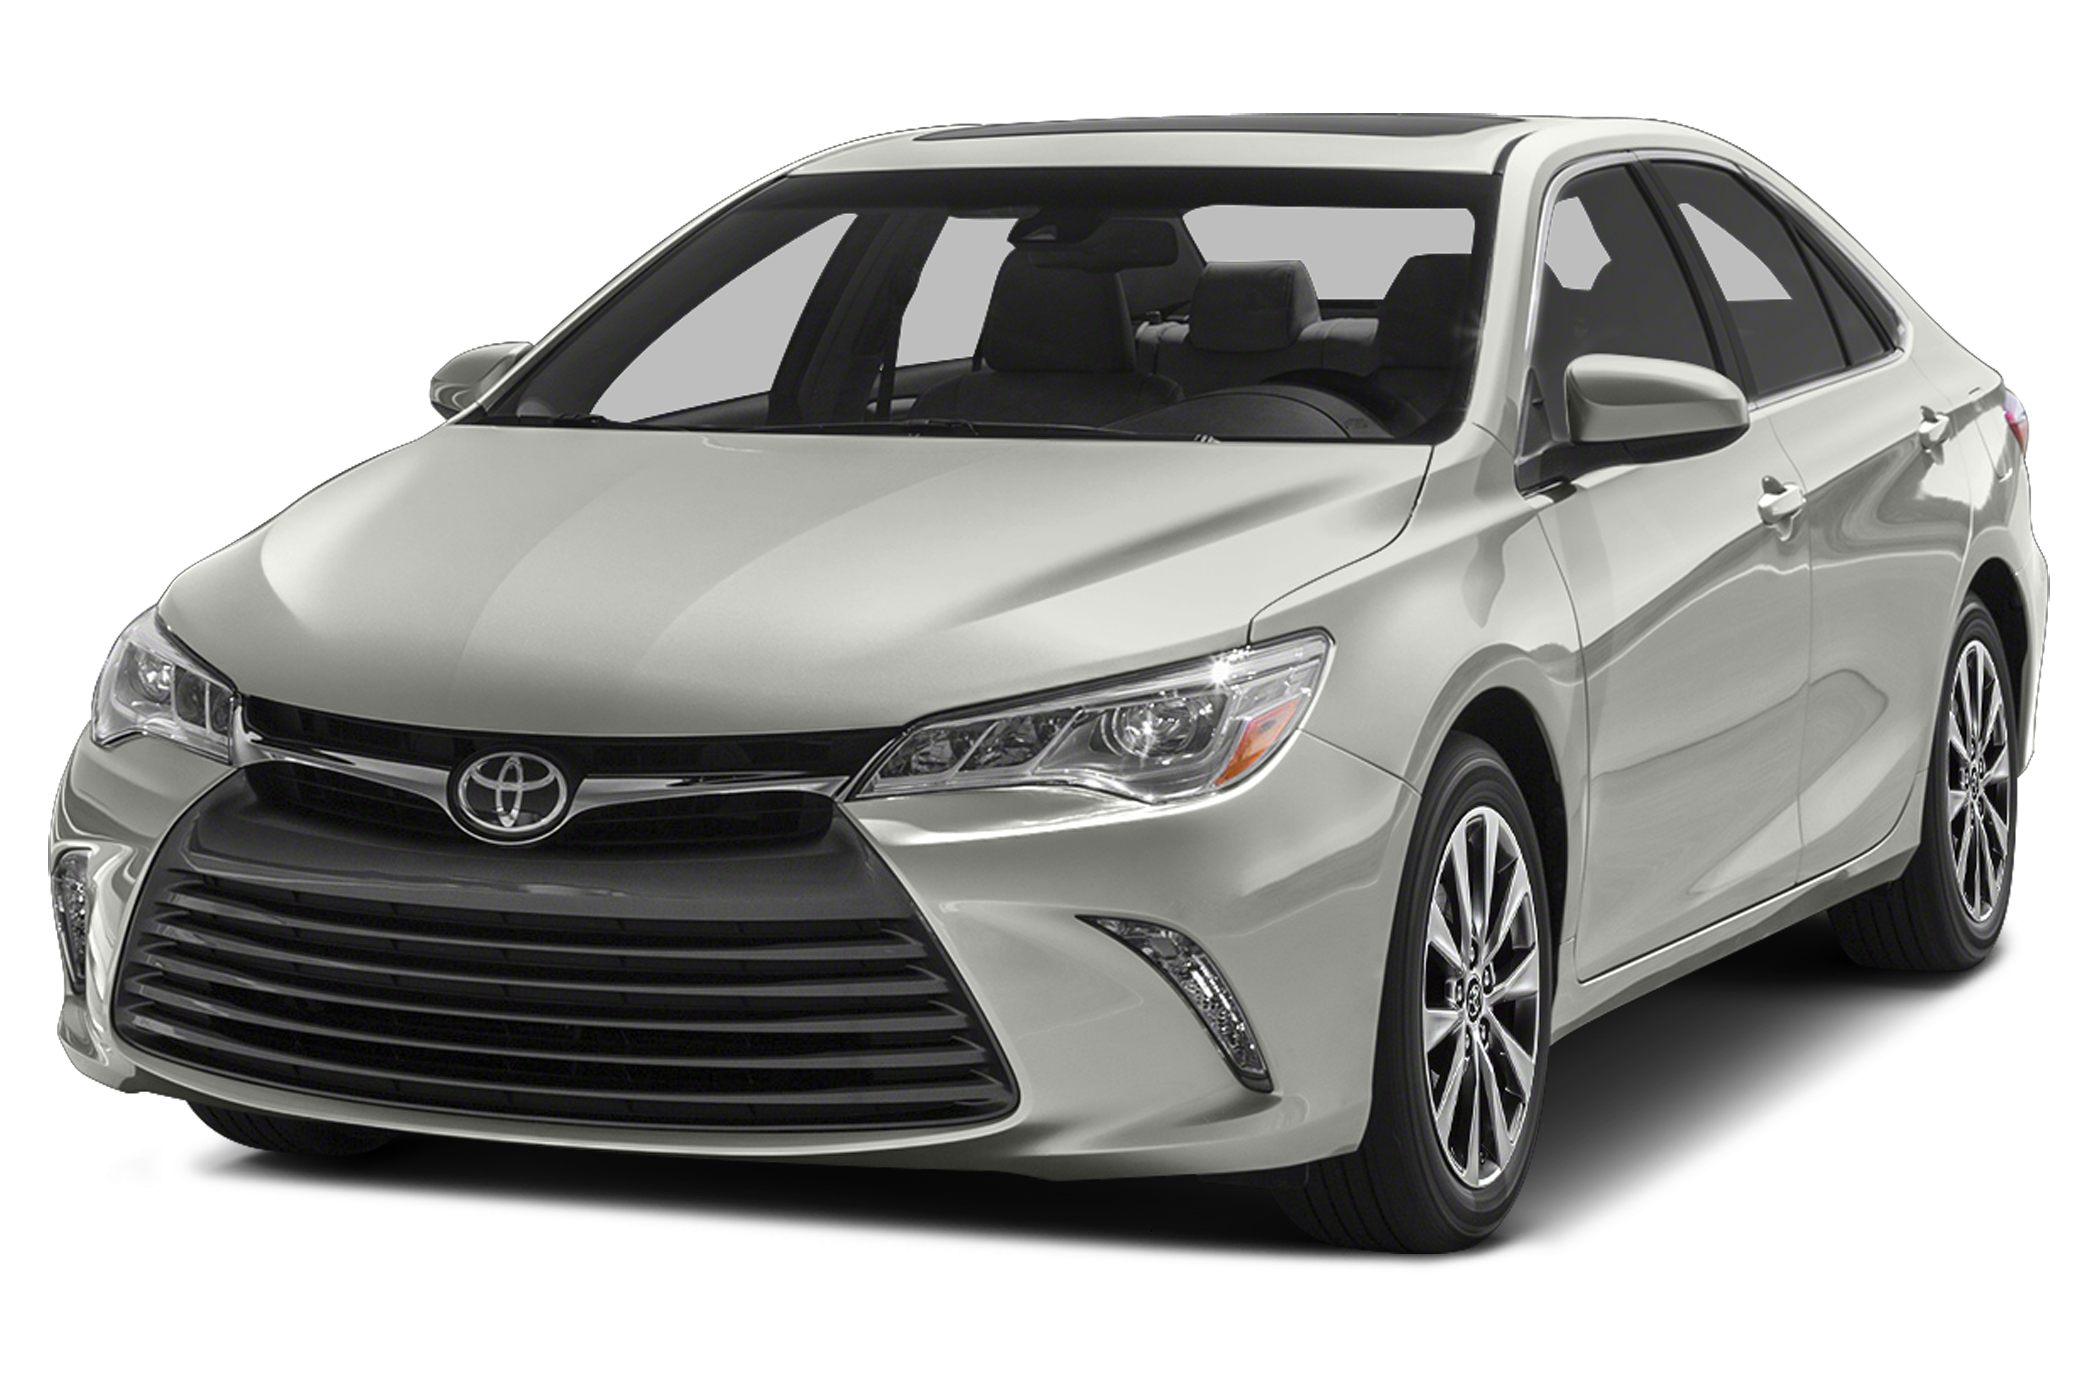 2015 Toyota Camry XLE Sedan for sale in Allentown for $27,478 with 0 miles